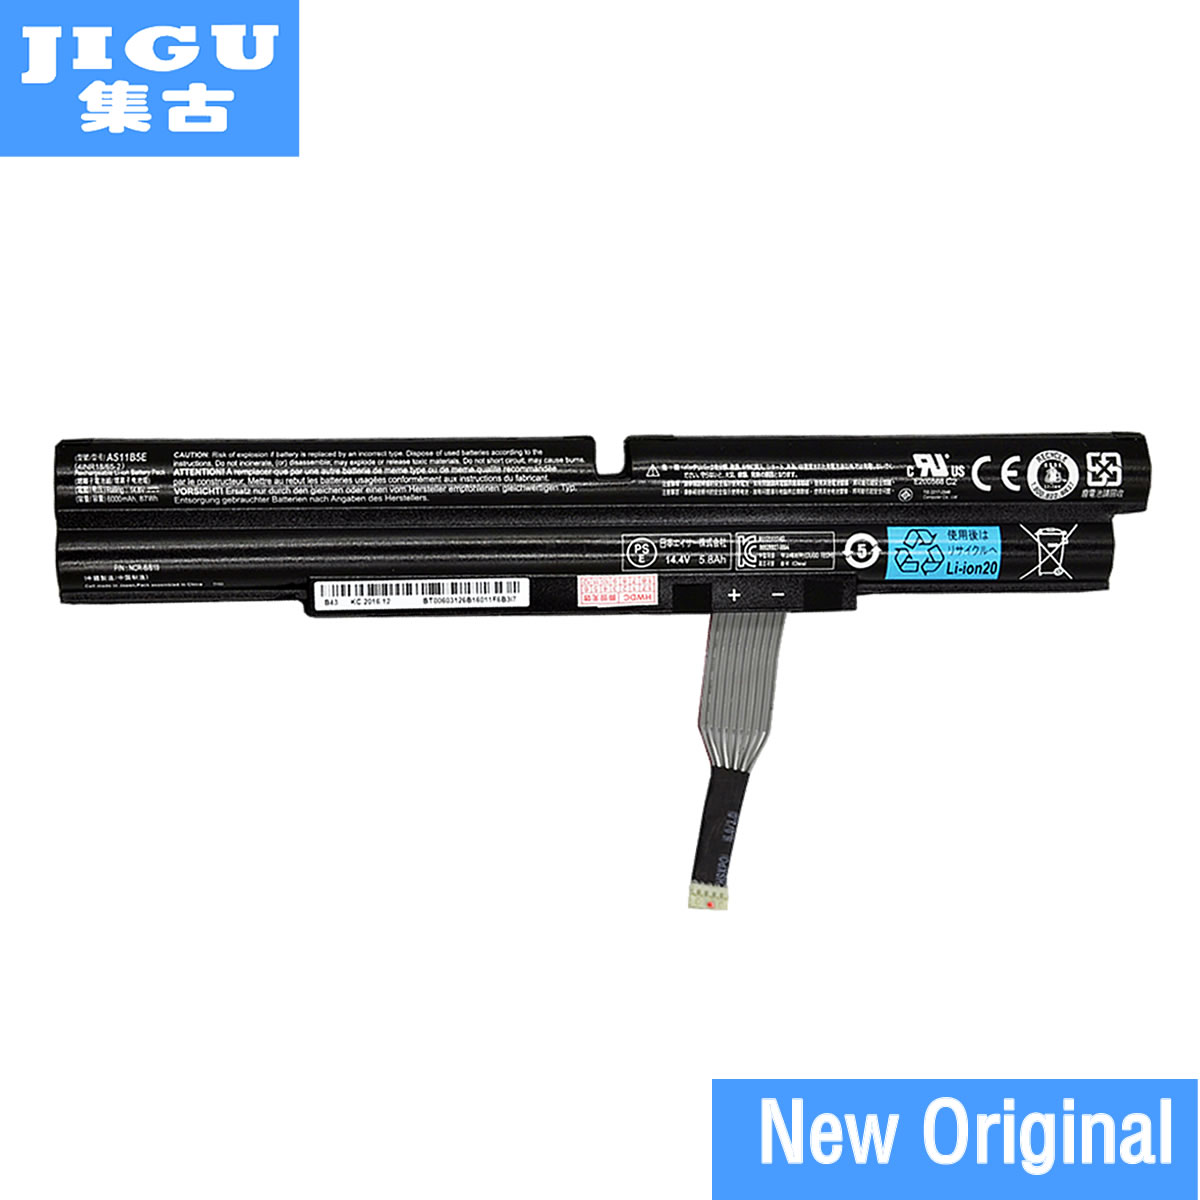 JIGU AS11B5E Original Laptop Battery For Acer Aspire Ethos 5951 8950 8951 5943G 5951G 8943G 8951G 14.8V 6000MAH 87WH pitatel bt 086 аккумулятор для ноутбуков acer aspire 5943g 5950g 8943g 8950g